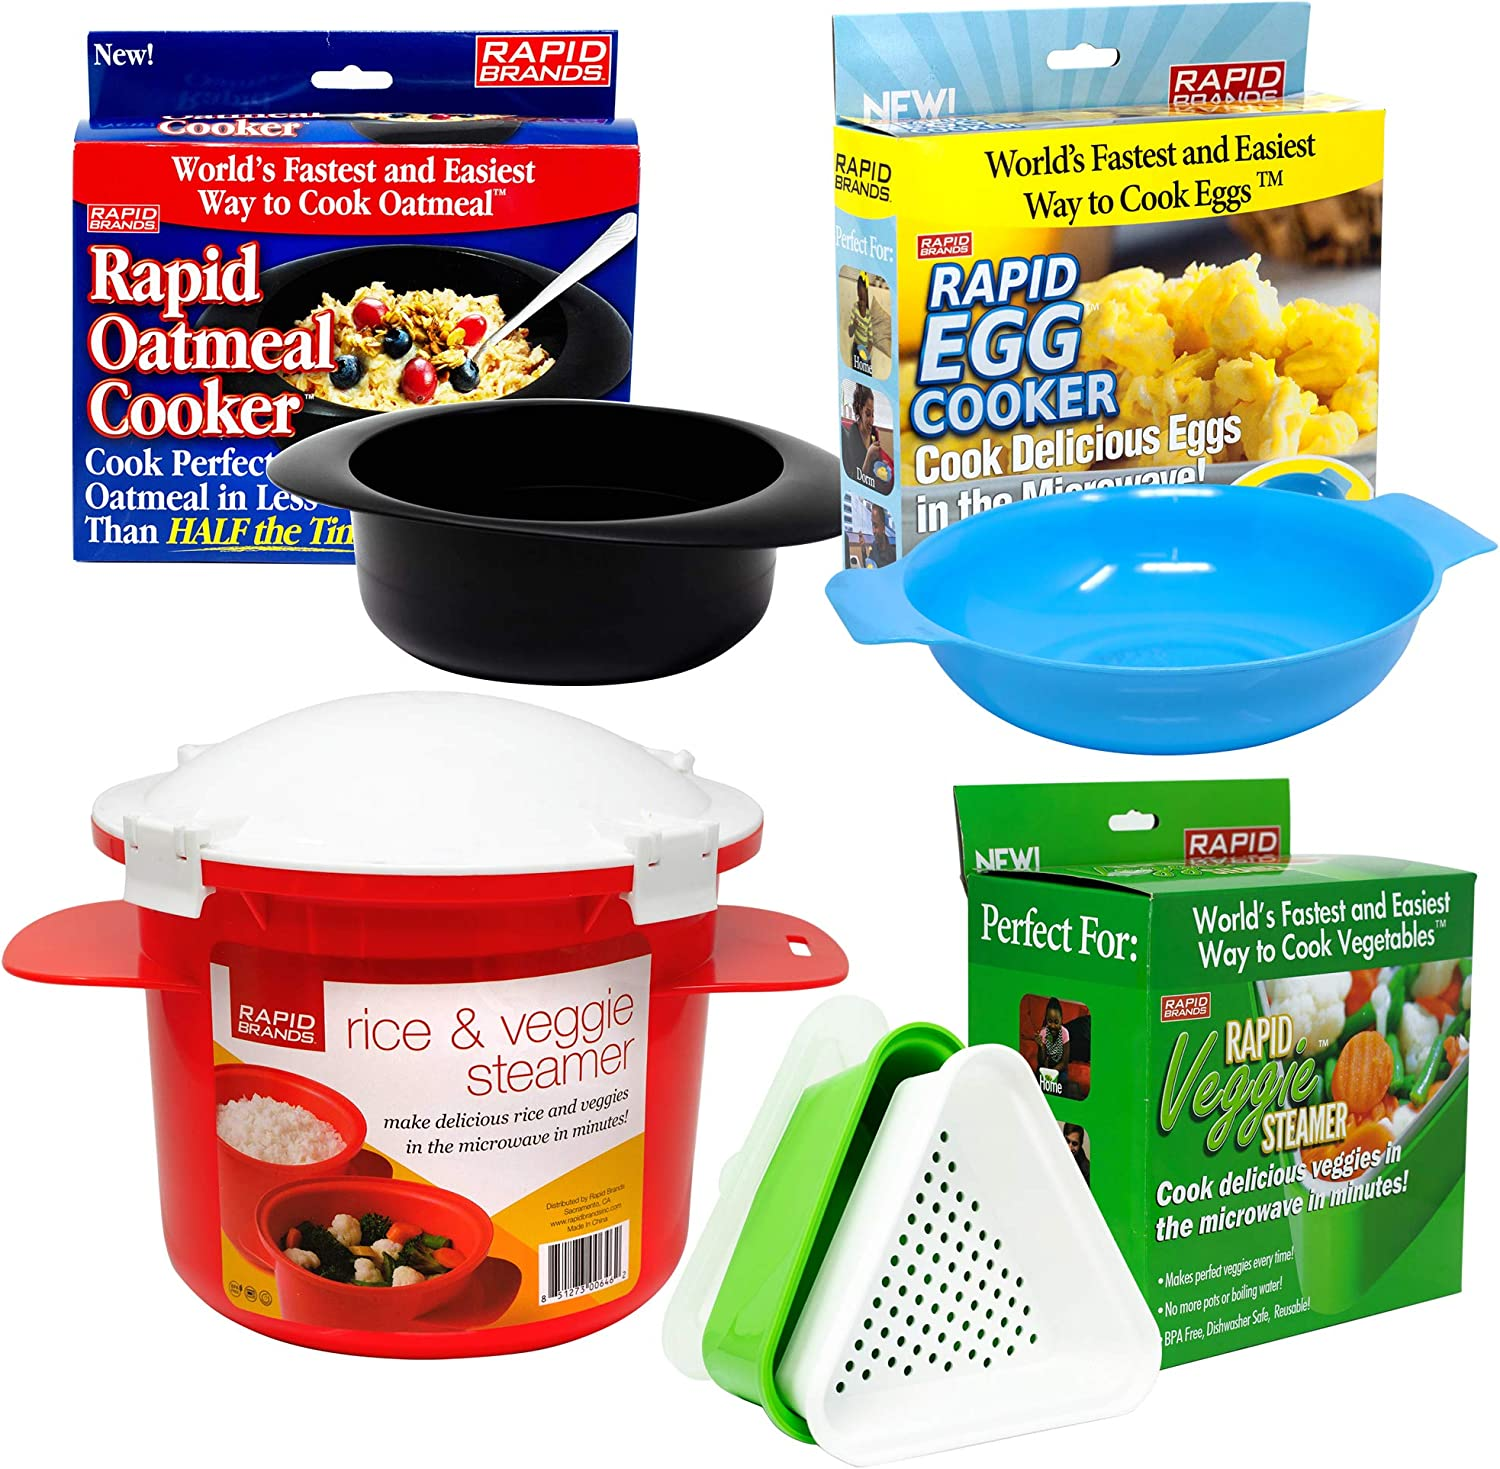 Jen Widerstrom 4-Piece Rapid Microwave Cookware Set for Healthy & Quick Cooking | Perfect for Dorm, Small Kitchen, or Office | Dishwasher-Safe, Microwaveable, BPA-Free